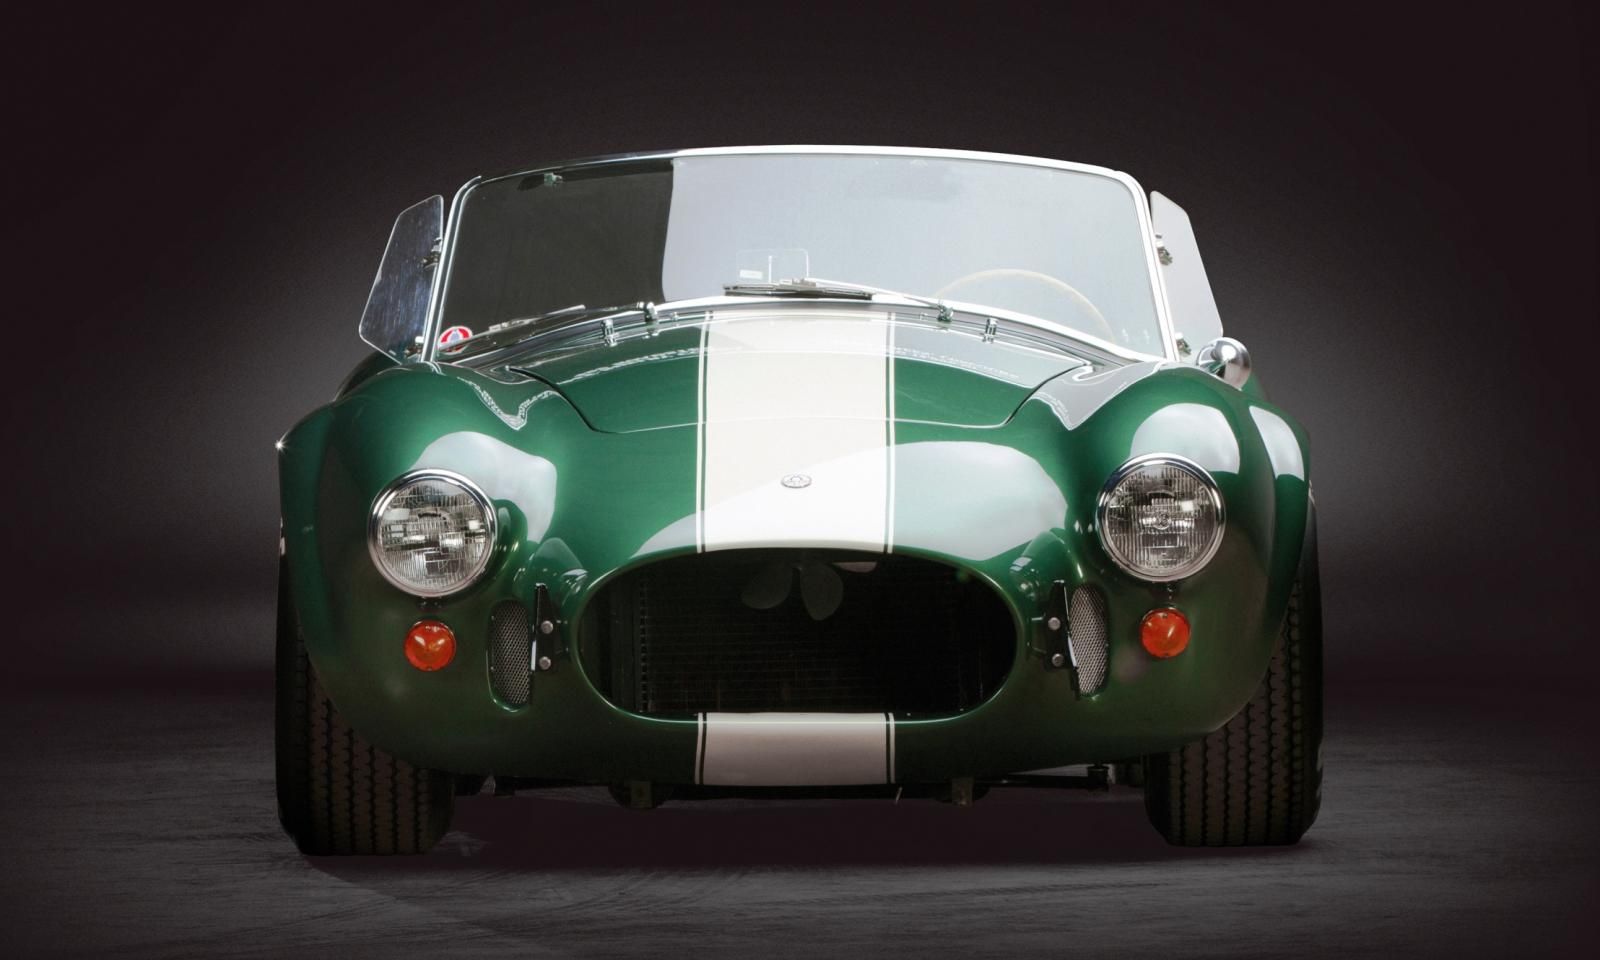 Rm Dallas Preview - ORIGINAL 1967 Shelby 427 Cobra Estimated at $1MM+ 9